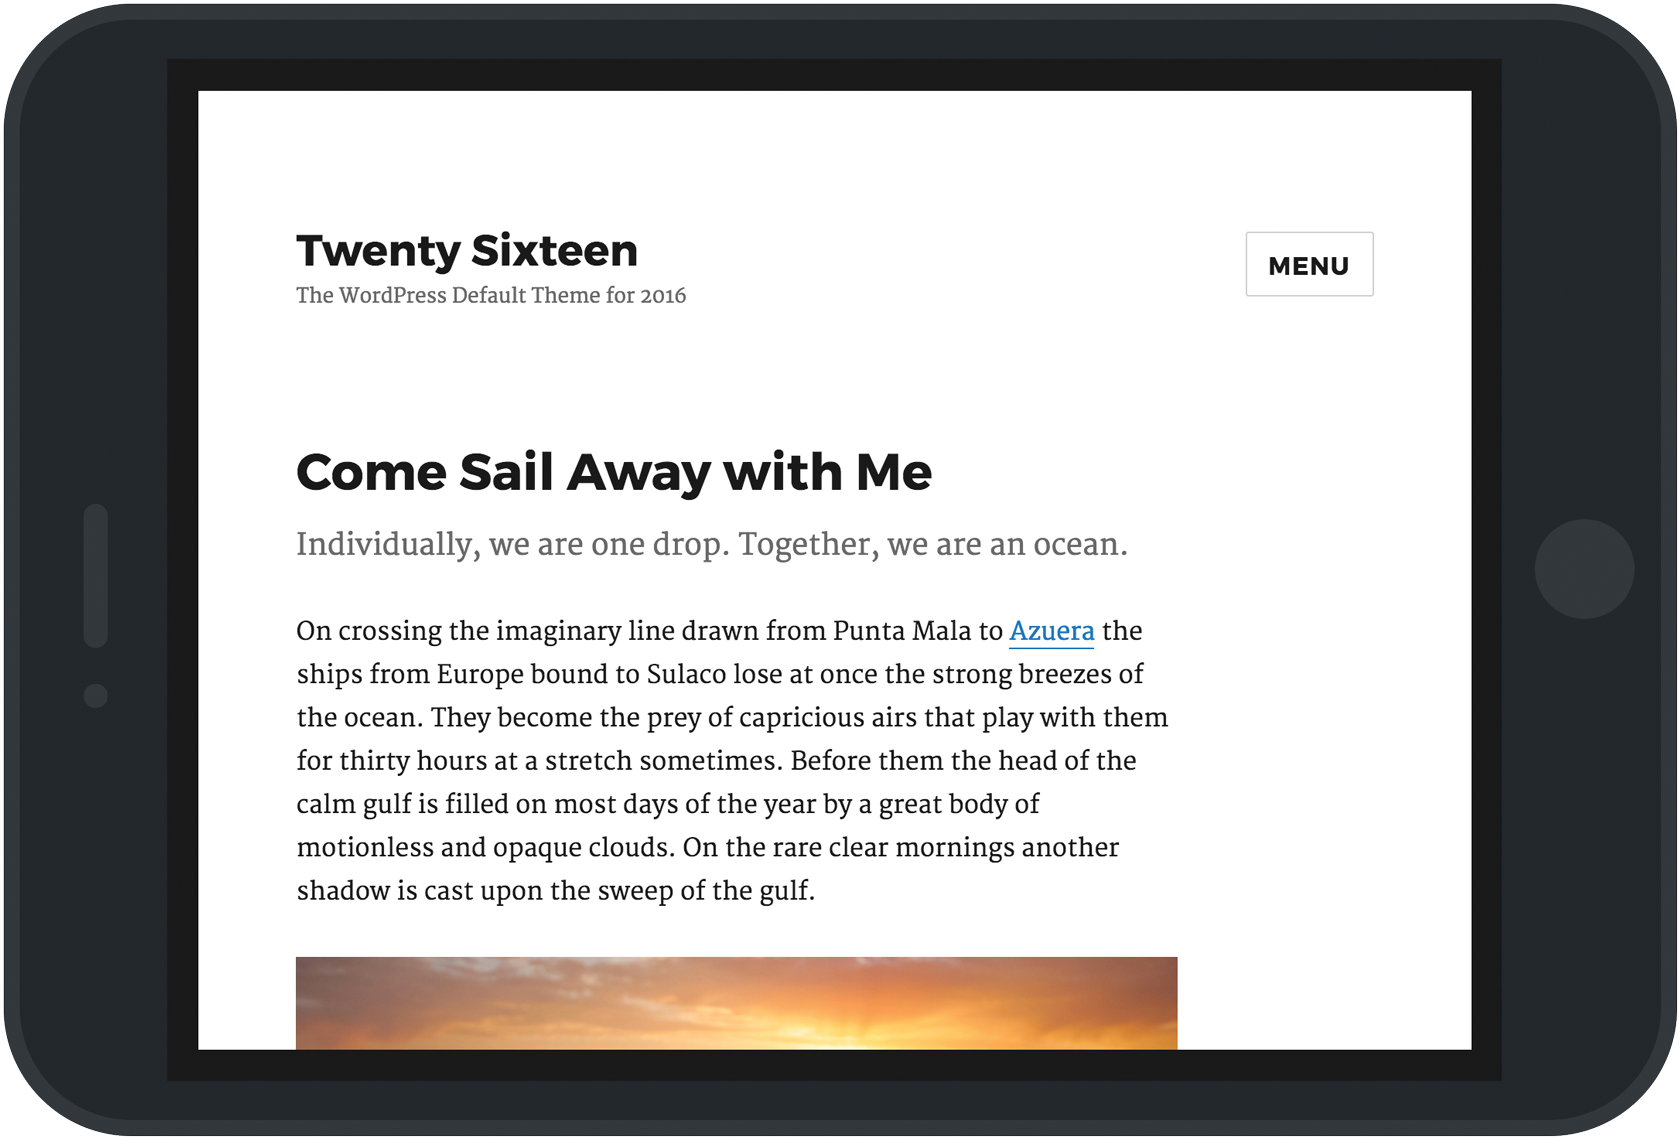 A screenshot of Twenty Sixteen set in an iPad frame